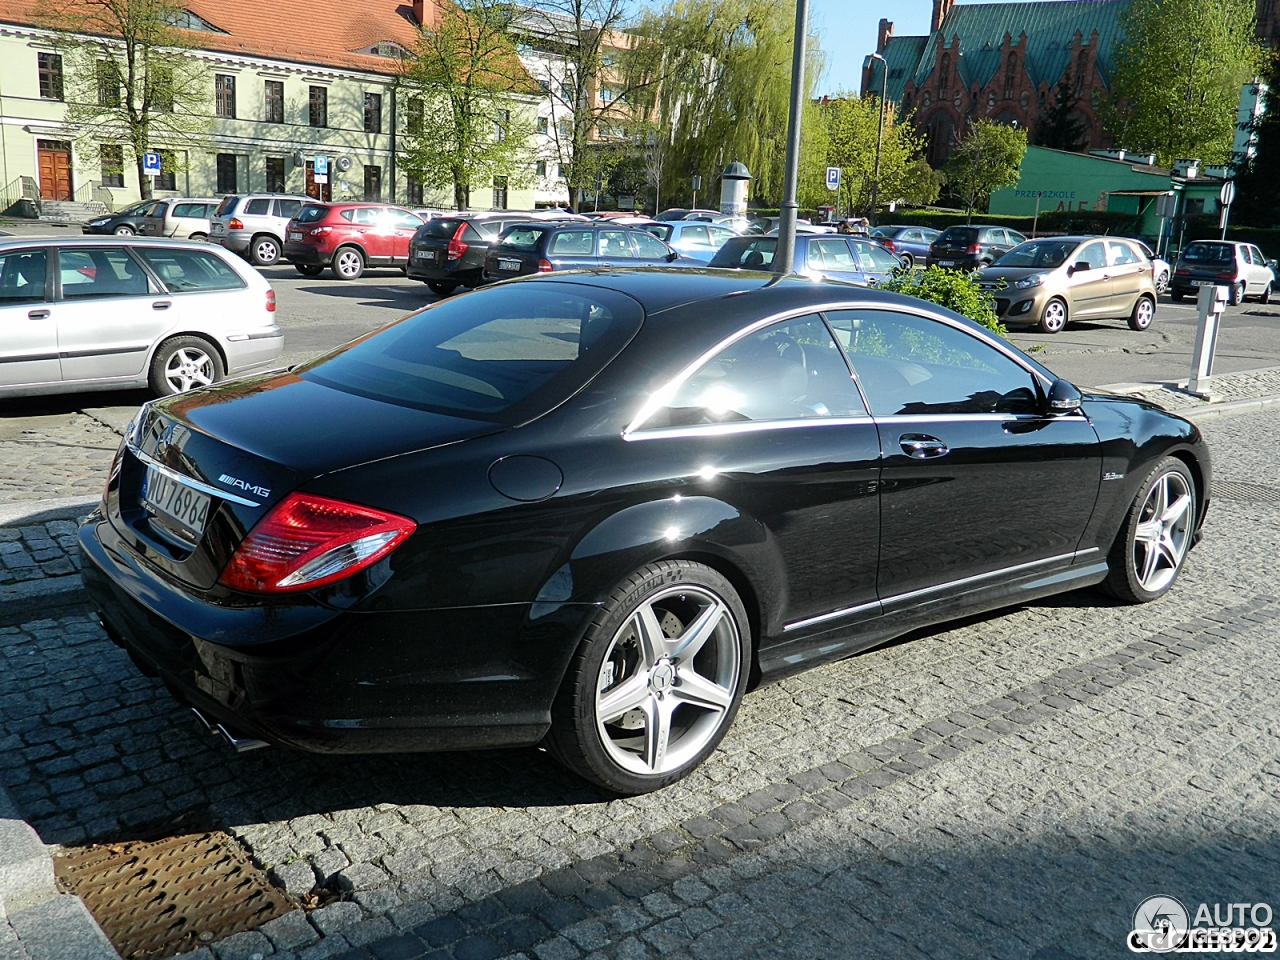 Mercedes benz cl 63 amg c216 22 april 2016 autogespot for Mercedes benz cl 63 amg price